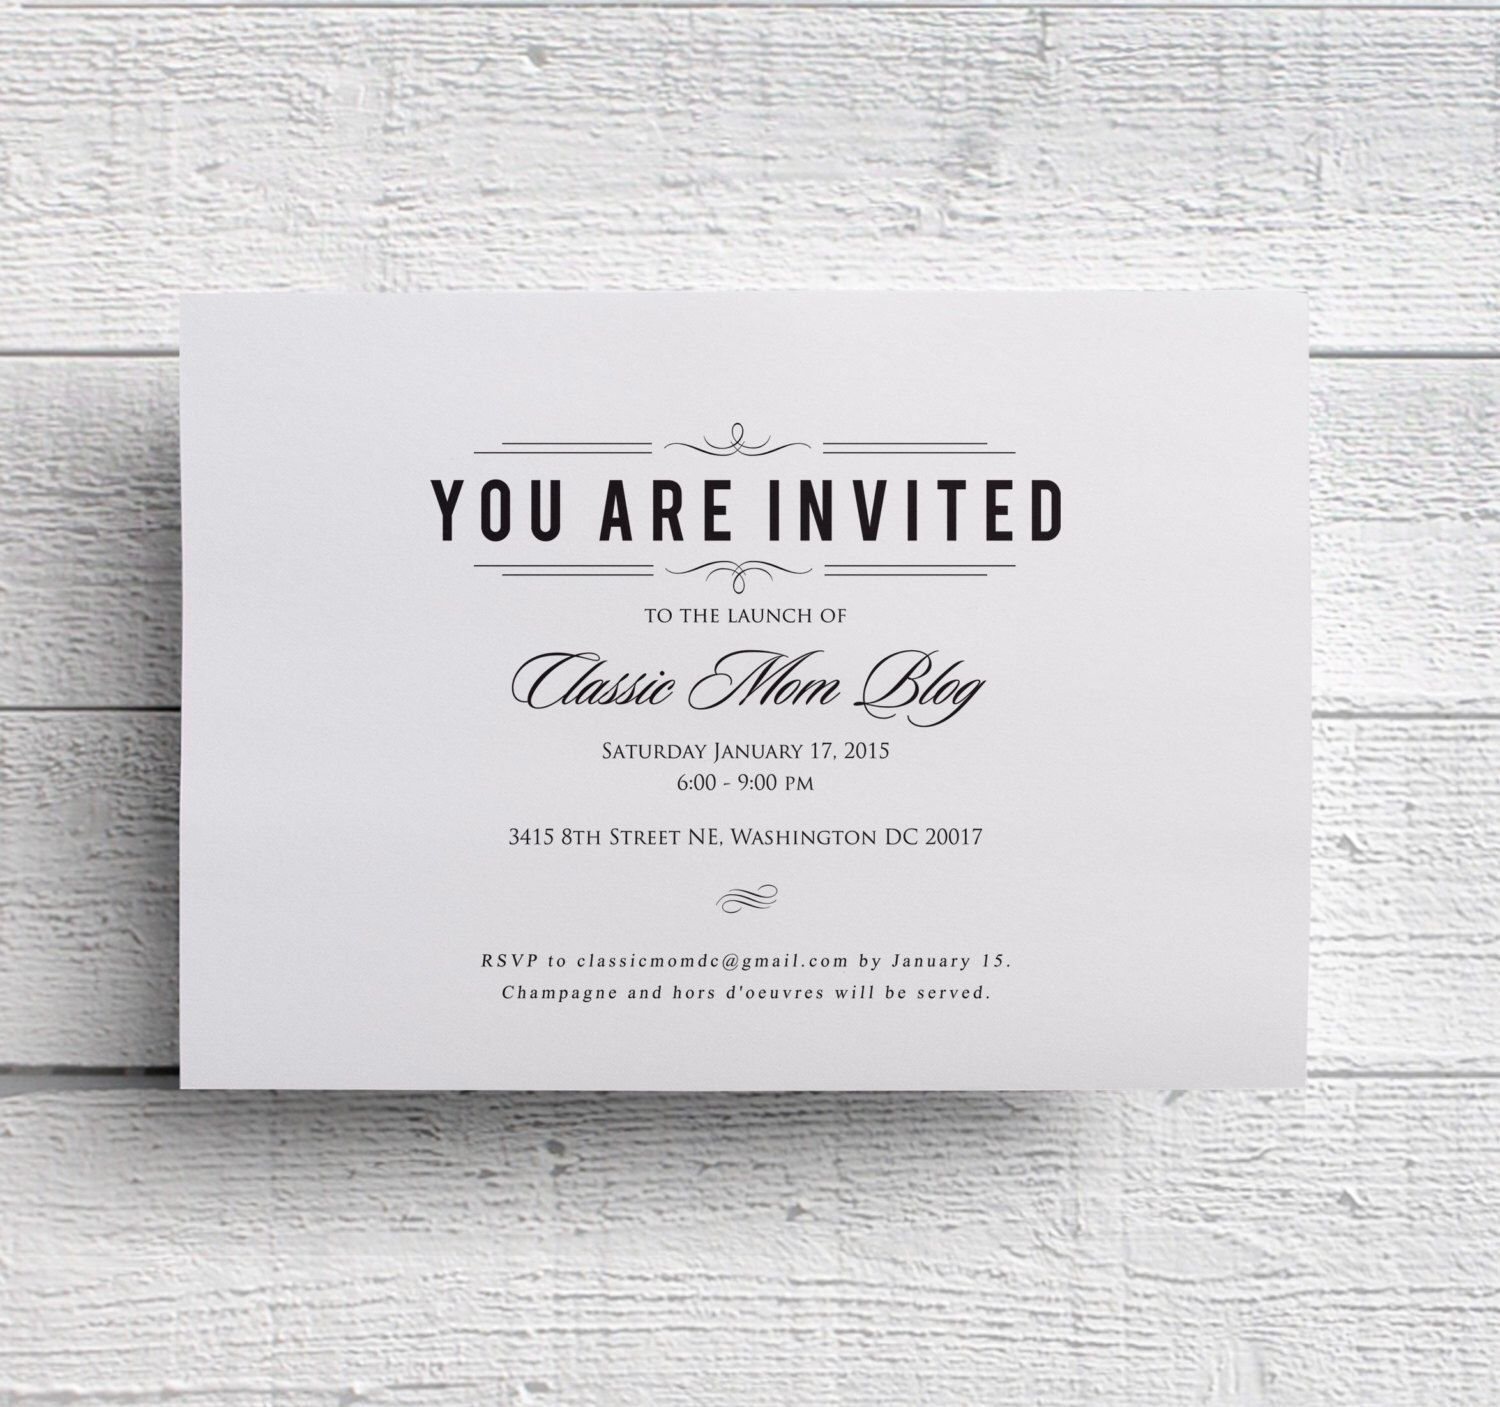 corporate event invitation company dinner invitation fundraiser corporate event invitation company dinner invitation fundraiser invitation print your own by edencreativestudio on